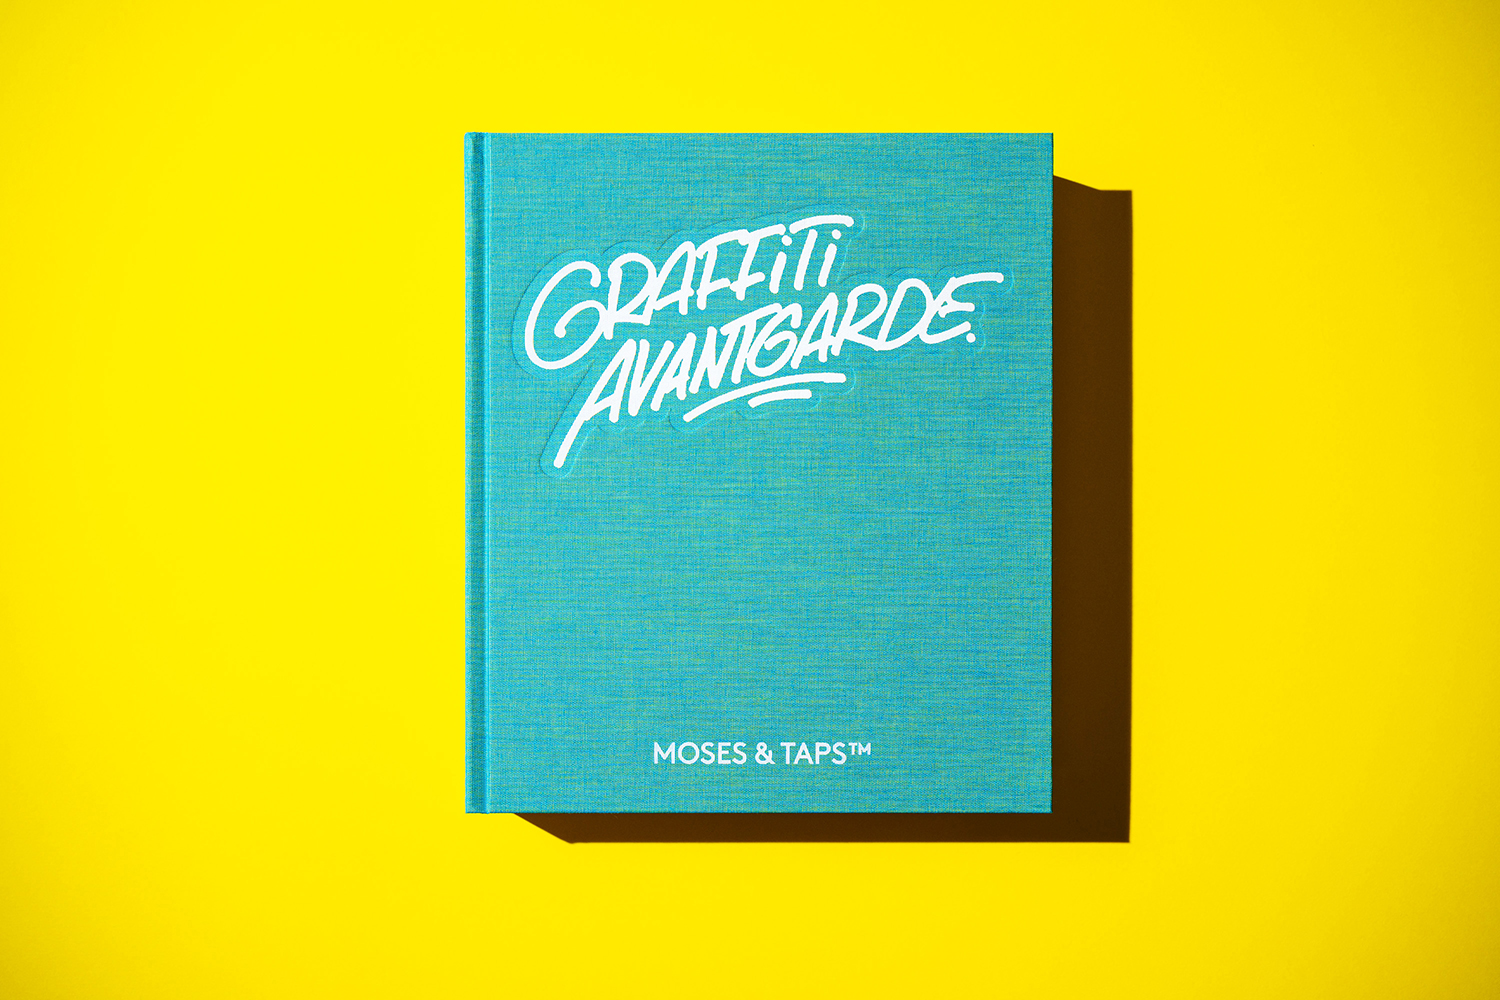 MOSES TAPS GRAFFITI AVANTGARDE BOOK SPLASH EDITION UNIQUE COLLECTOR PAINTED COVER PLASTIC SLIPCASE THE GRIFTERS